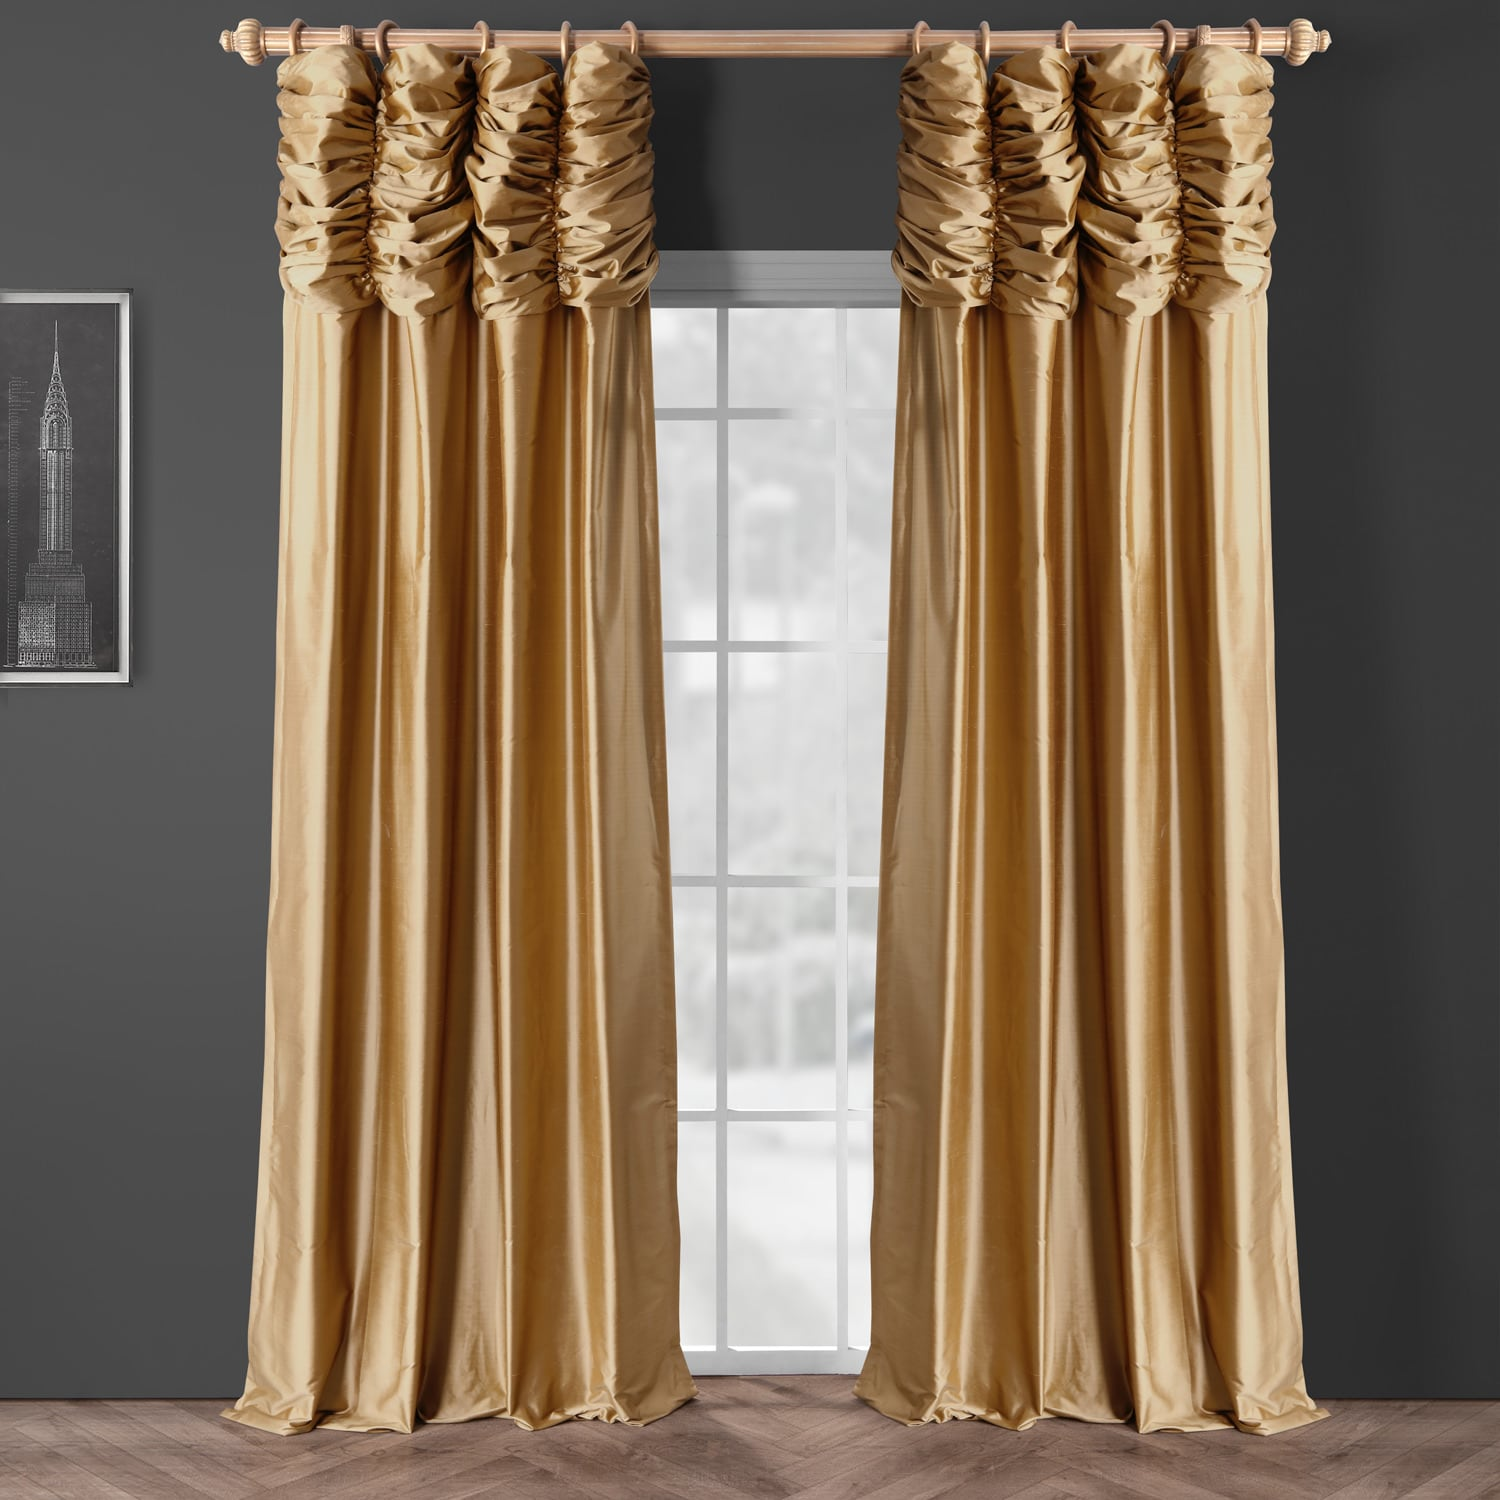 Buy Ruched Taupe Gold Thai Silk Curtains, Drapes